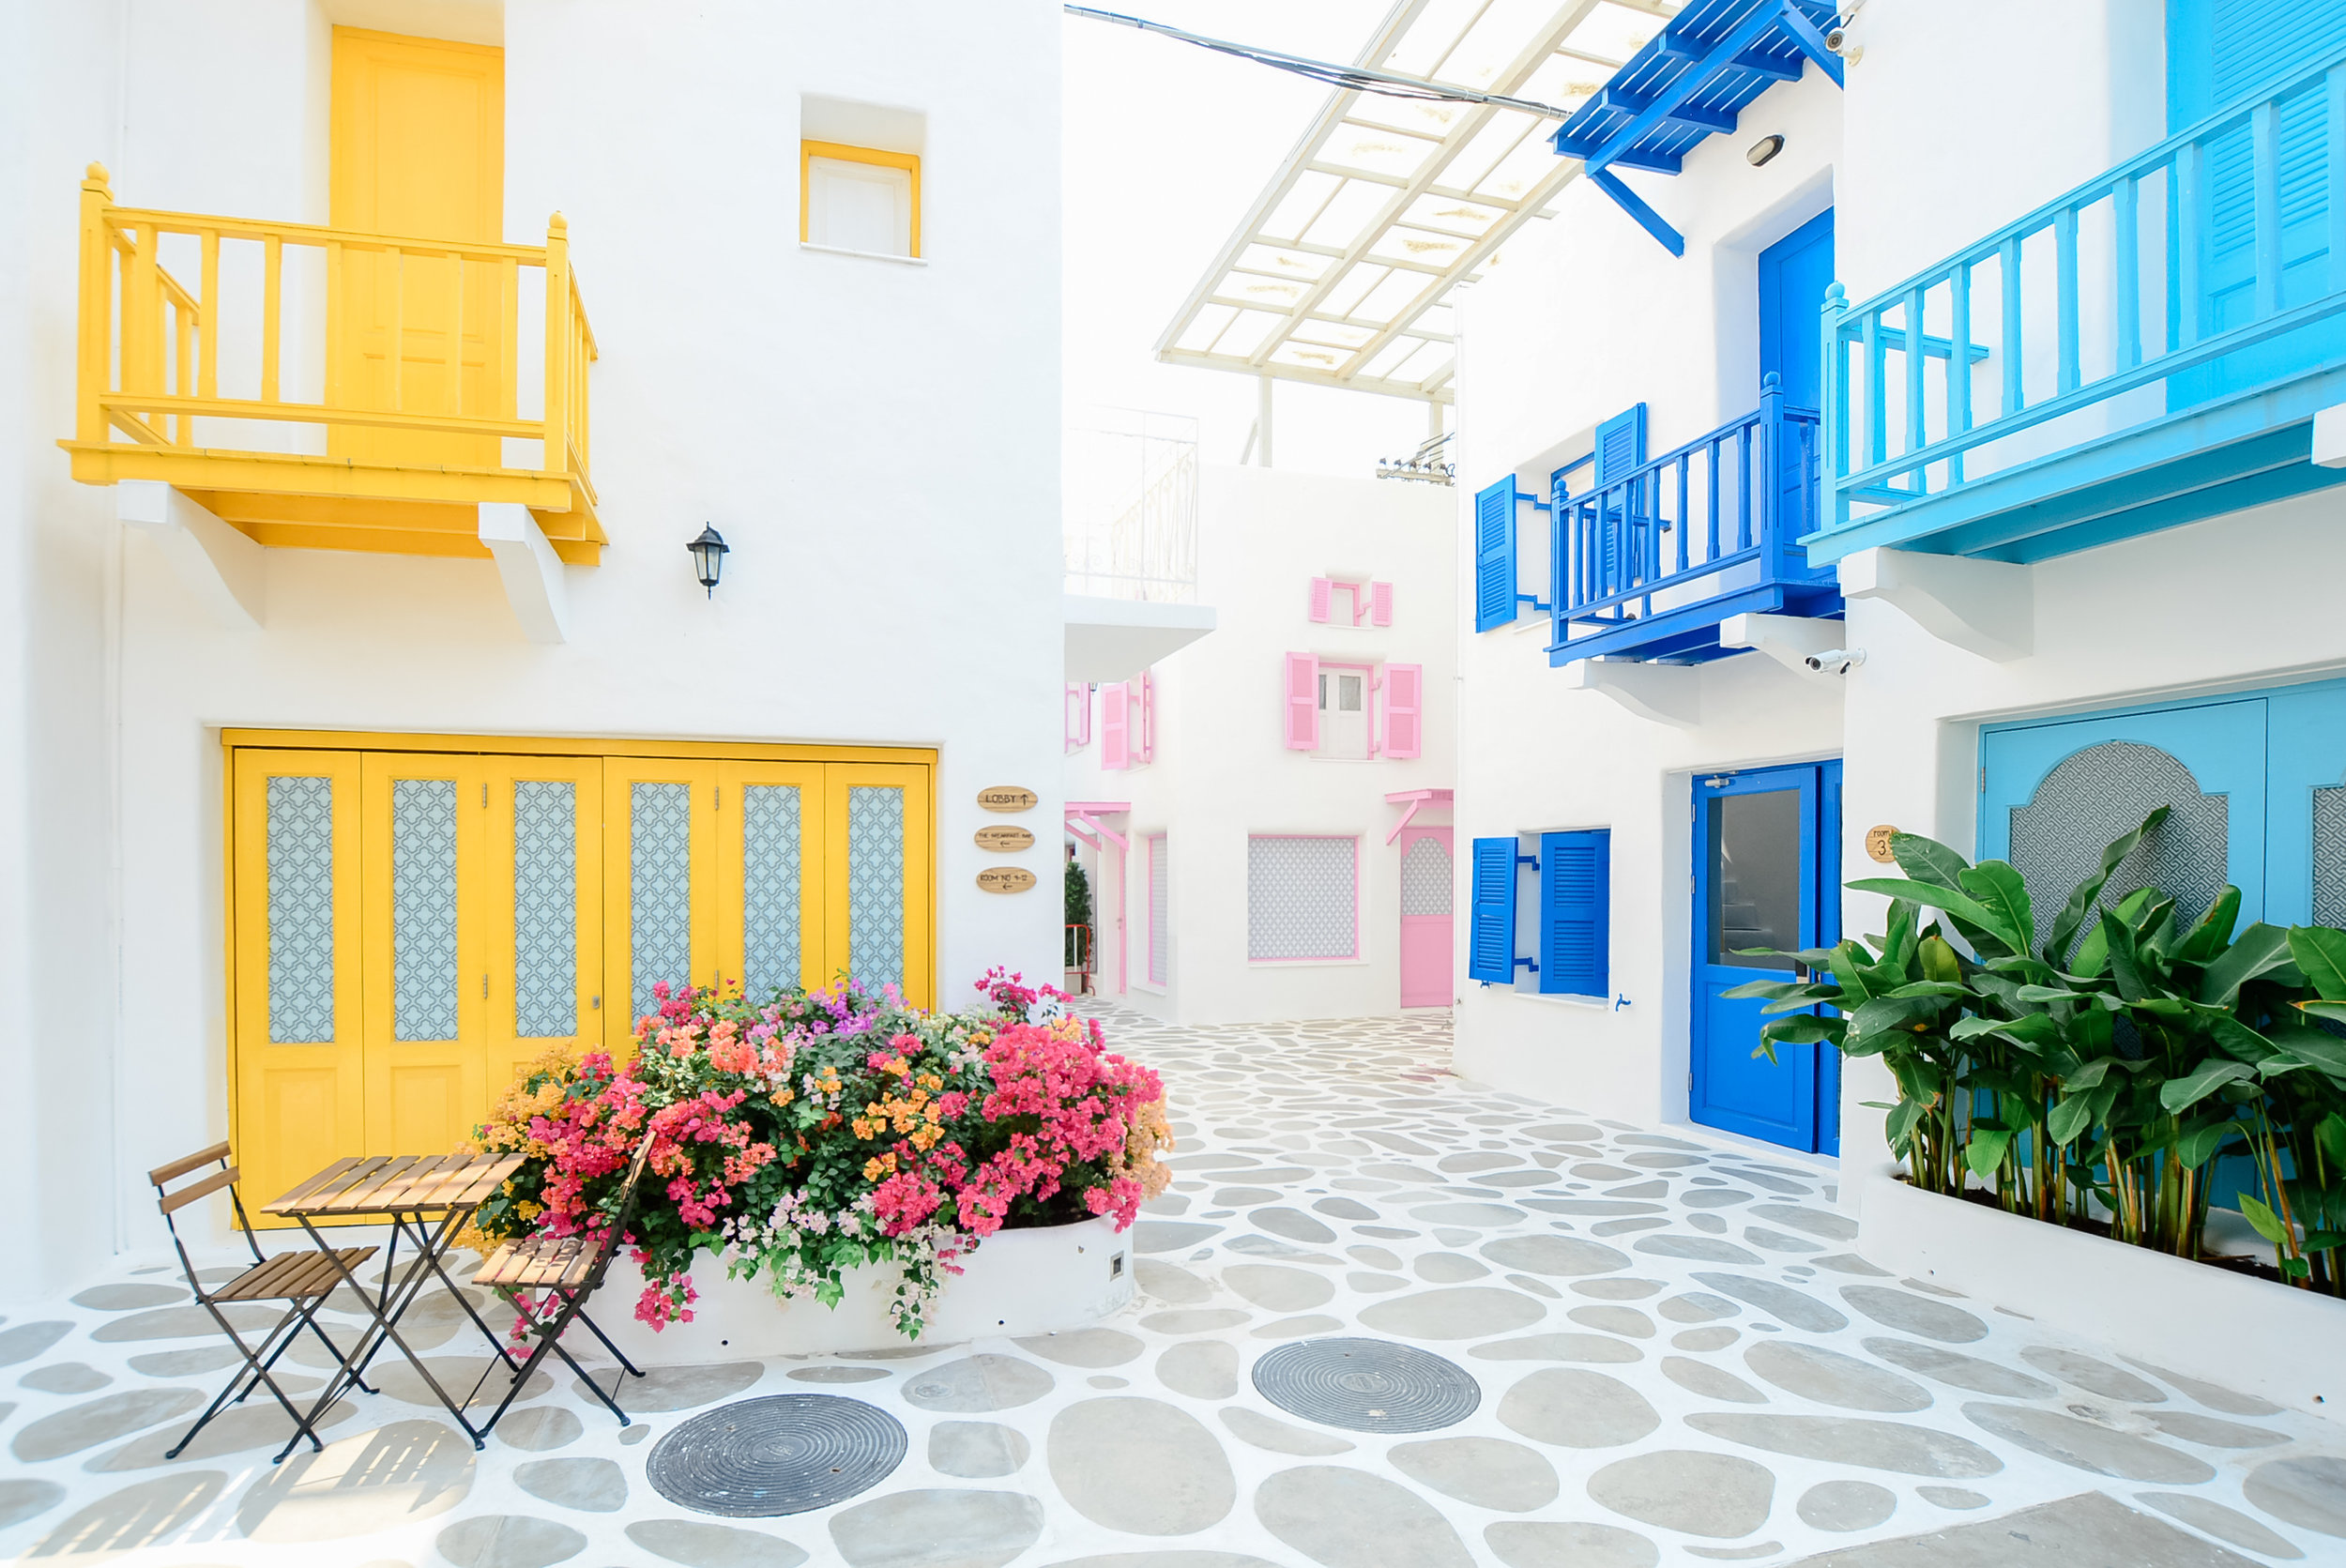 Beautiful Architecture building Exterior with santorini and gree